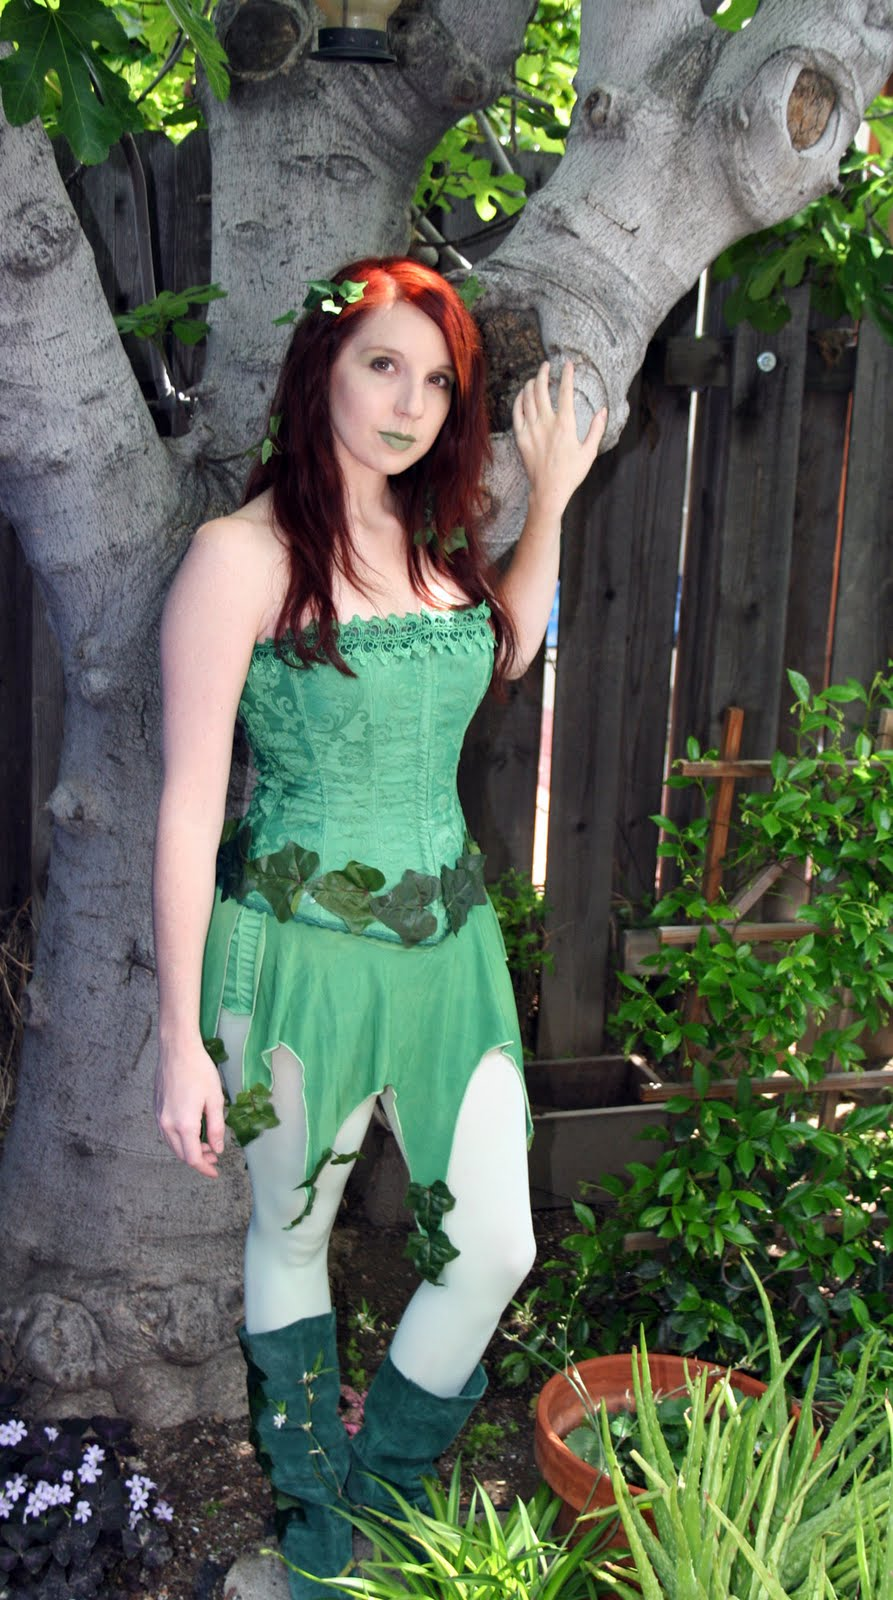 sc 1 st  Geek With Curves & geek with curves: Poison Ivy Costume